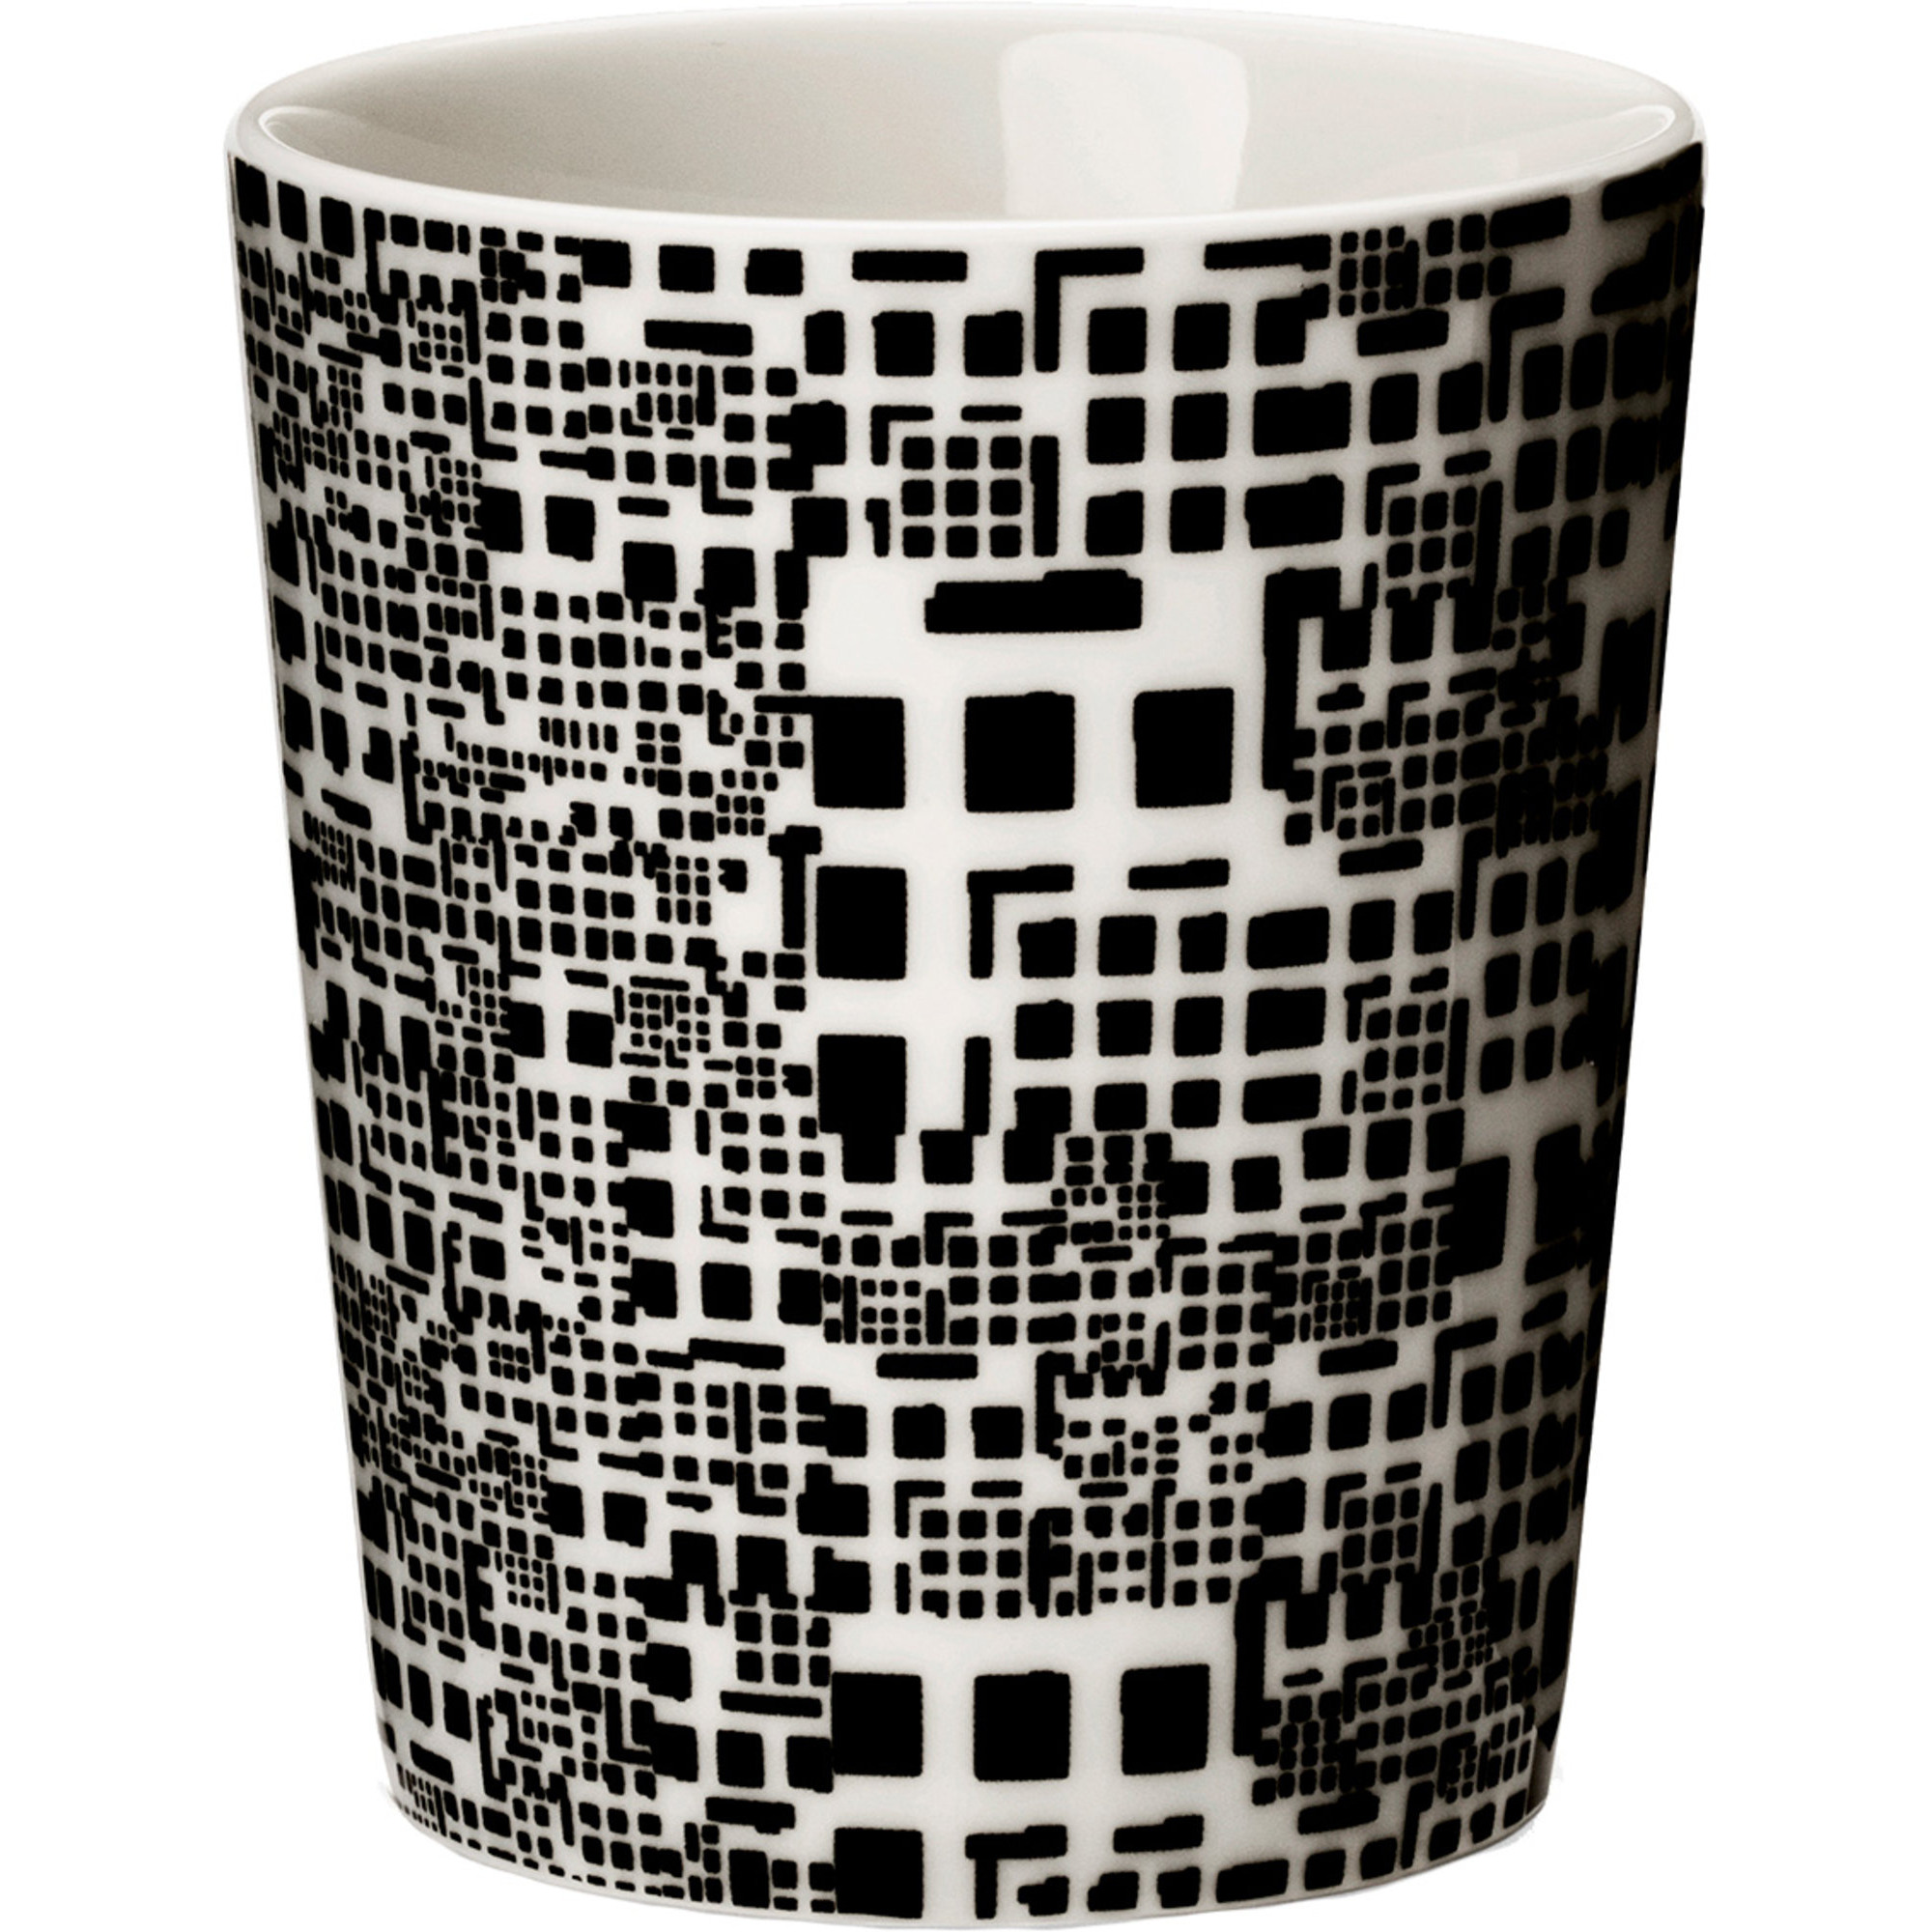 Design House Stockholm Urban Landscape Mugg Detail